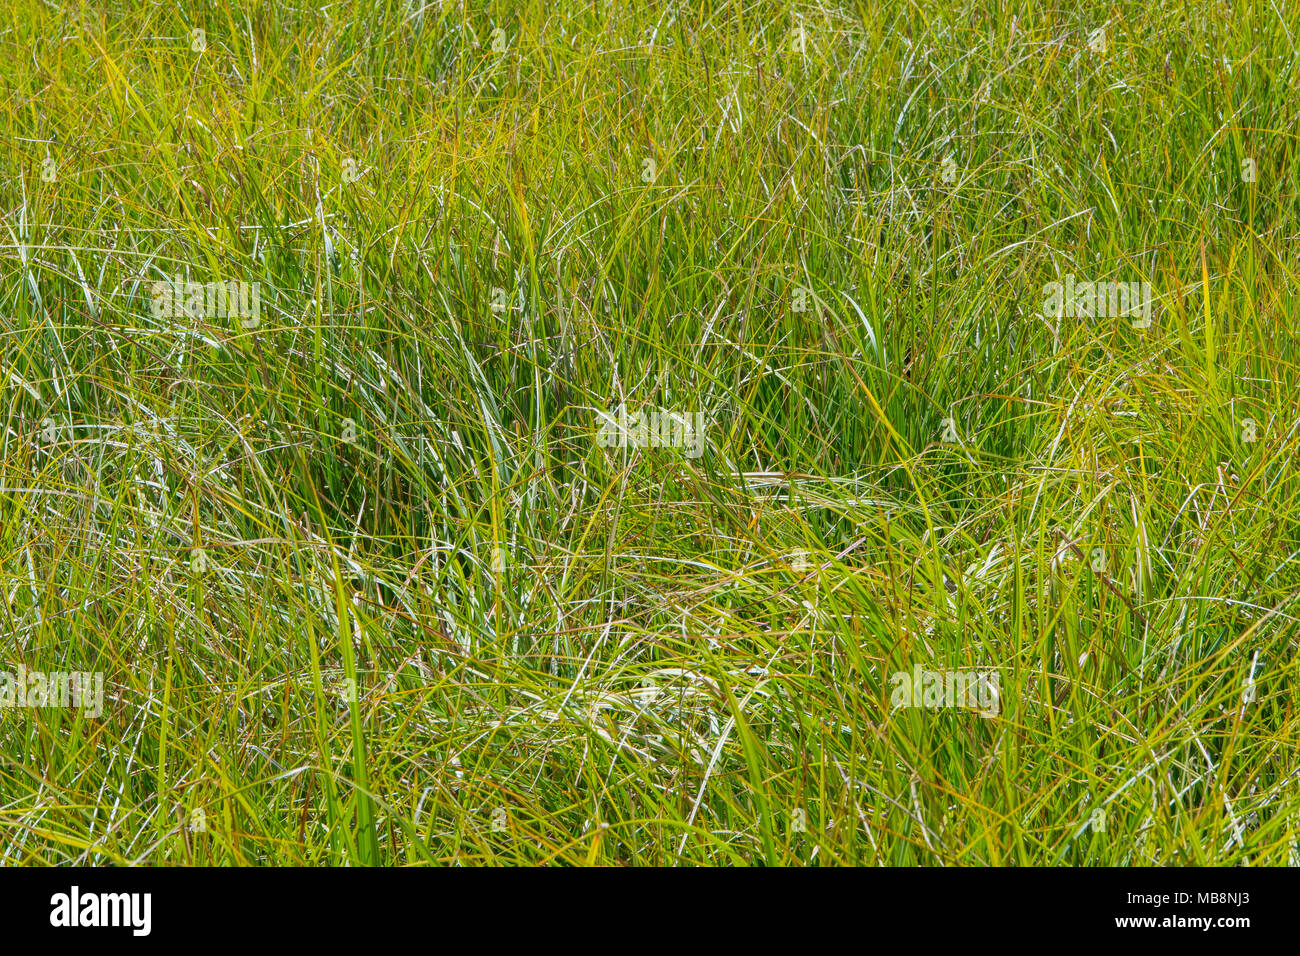 Close Up of Grassy Marsh in Rocky Mountain field - Stock Image